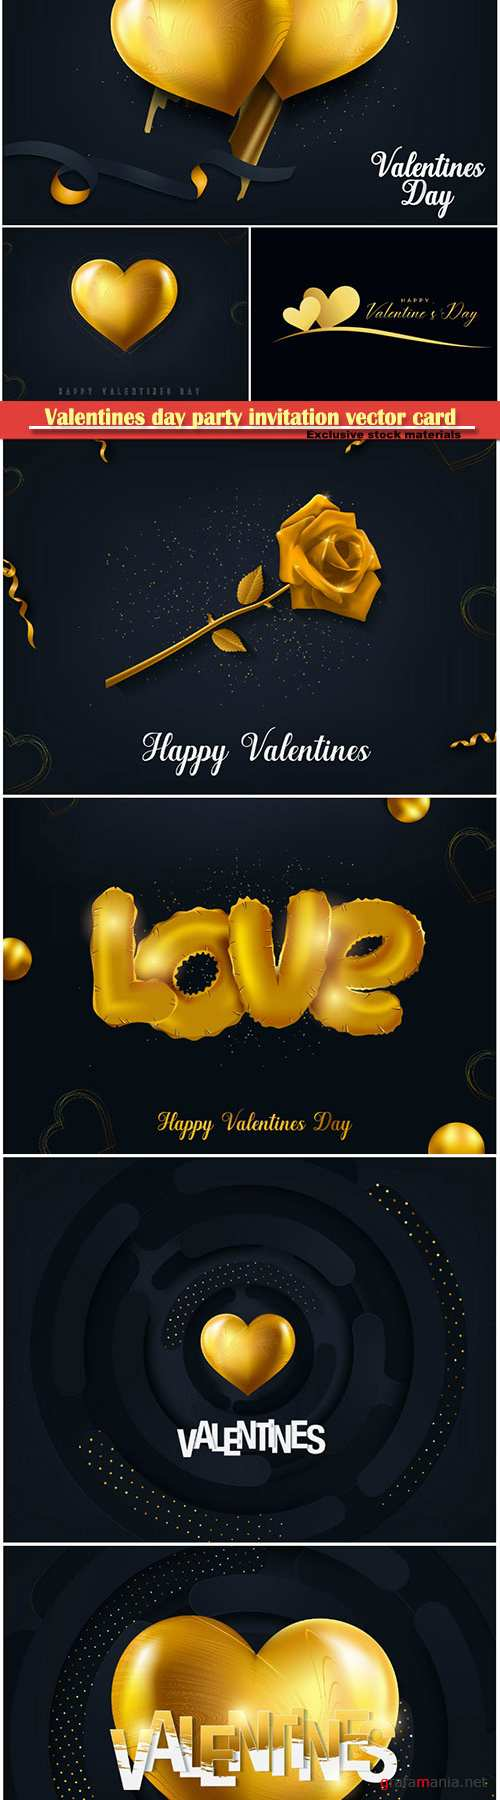 Valentines day party invitation vector card # 18